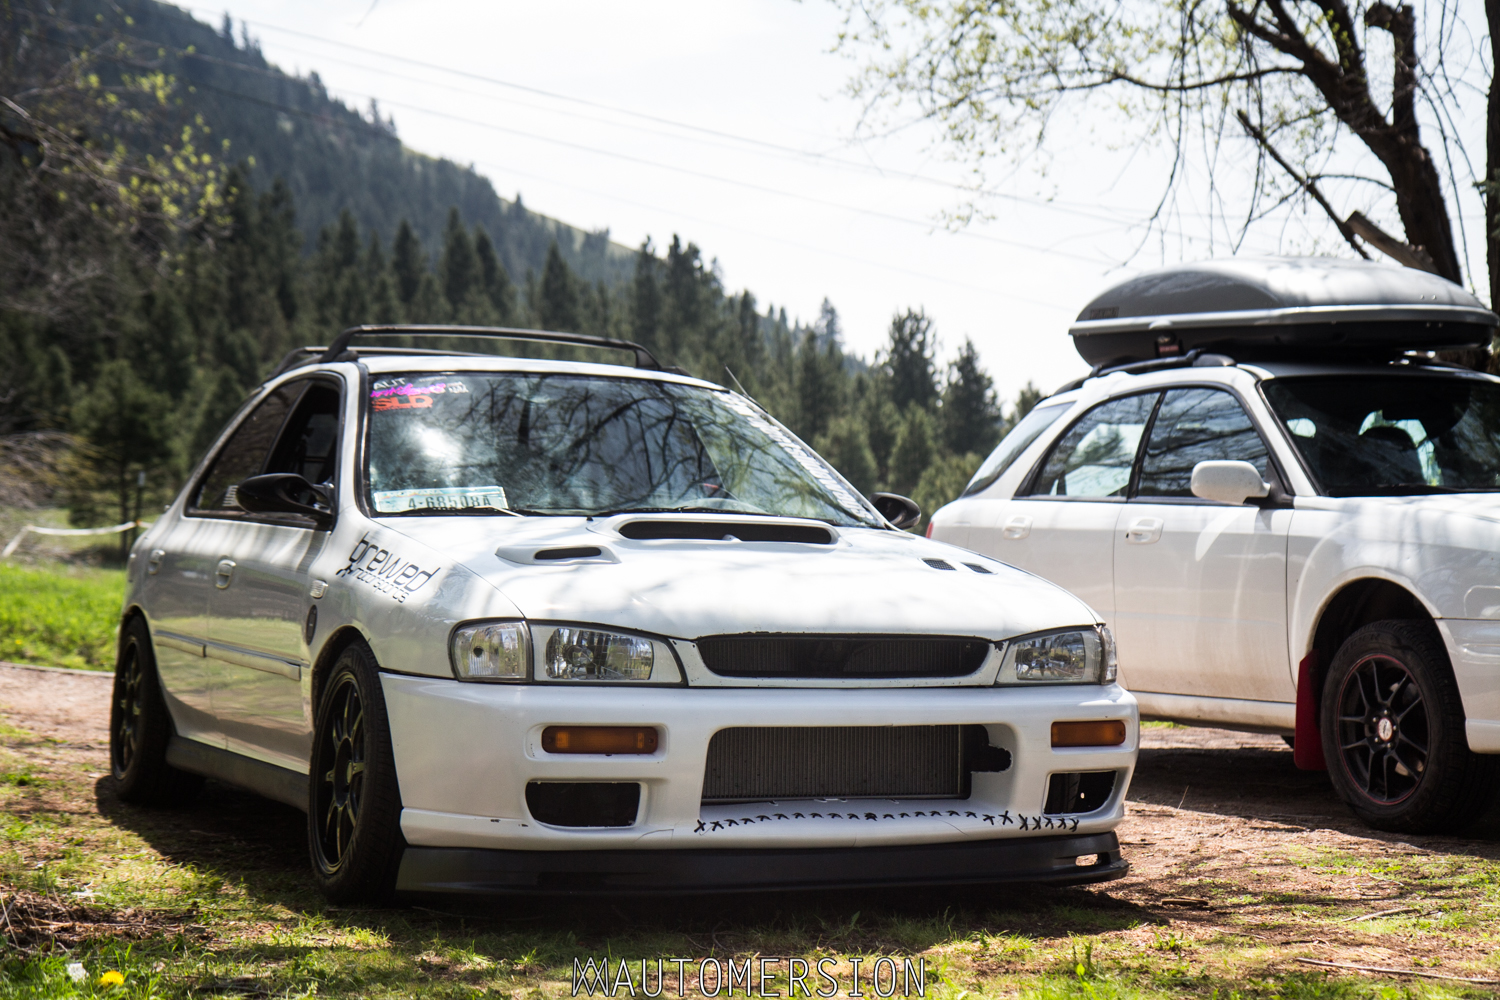 How To Fit A Honda Front Lip On Subaru Automersion 1999 Accord Custom Lowered Impreza And Lifted Wagon